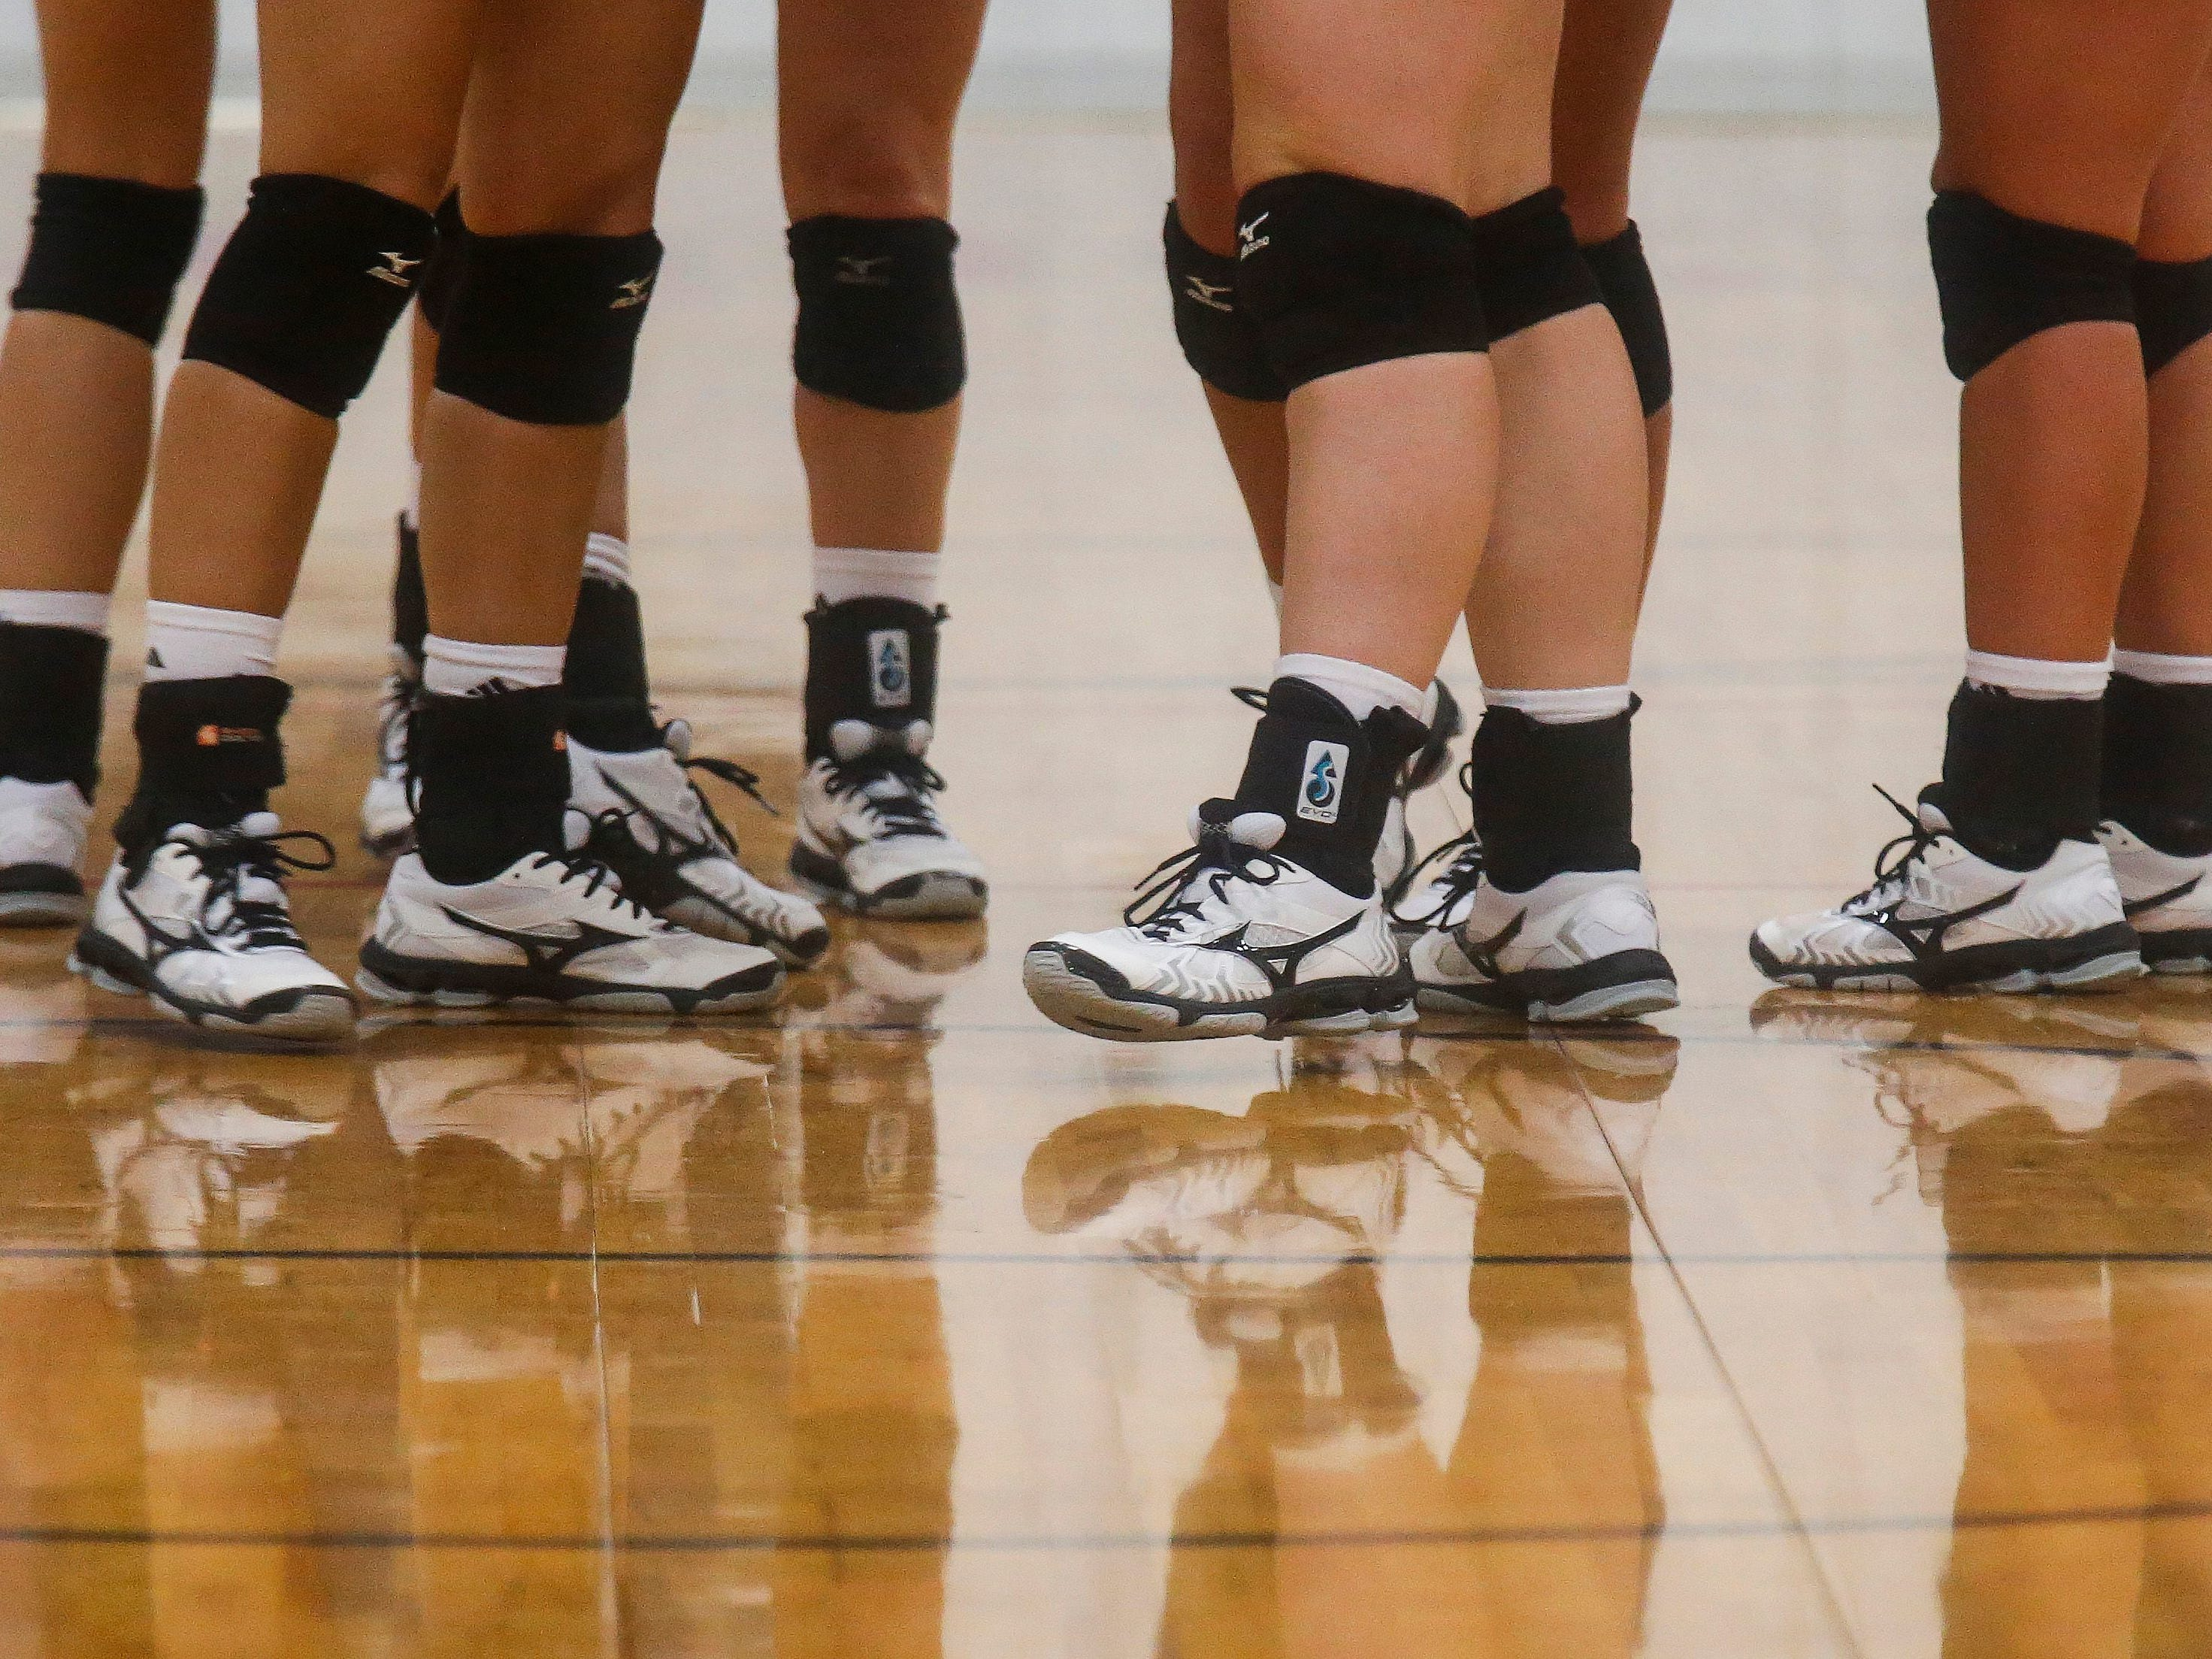 The College of the Ozarks Bobcats wore Mizuno shoes during their game against the Williams Baptist Eagles during the 2018 Evangel Classic at The Courts in Springfield, MO., on Saturday, Sep. 8, 2018.